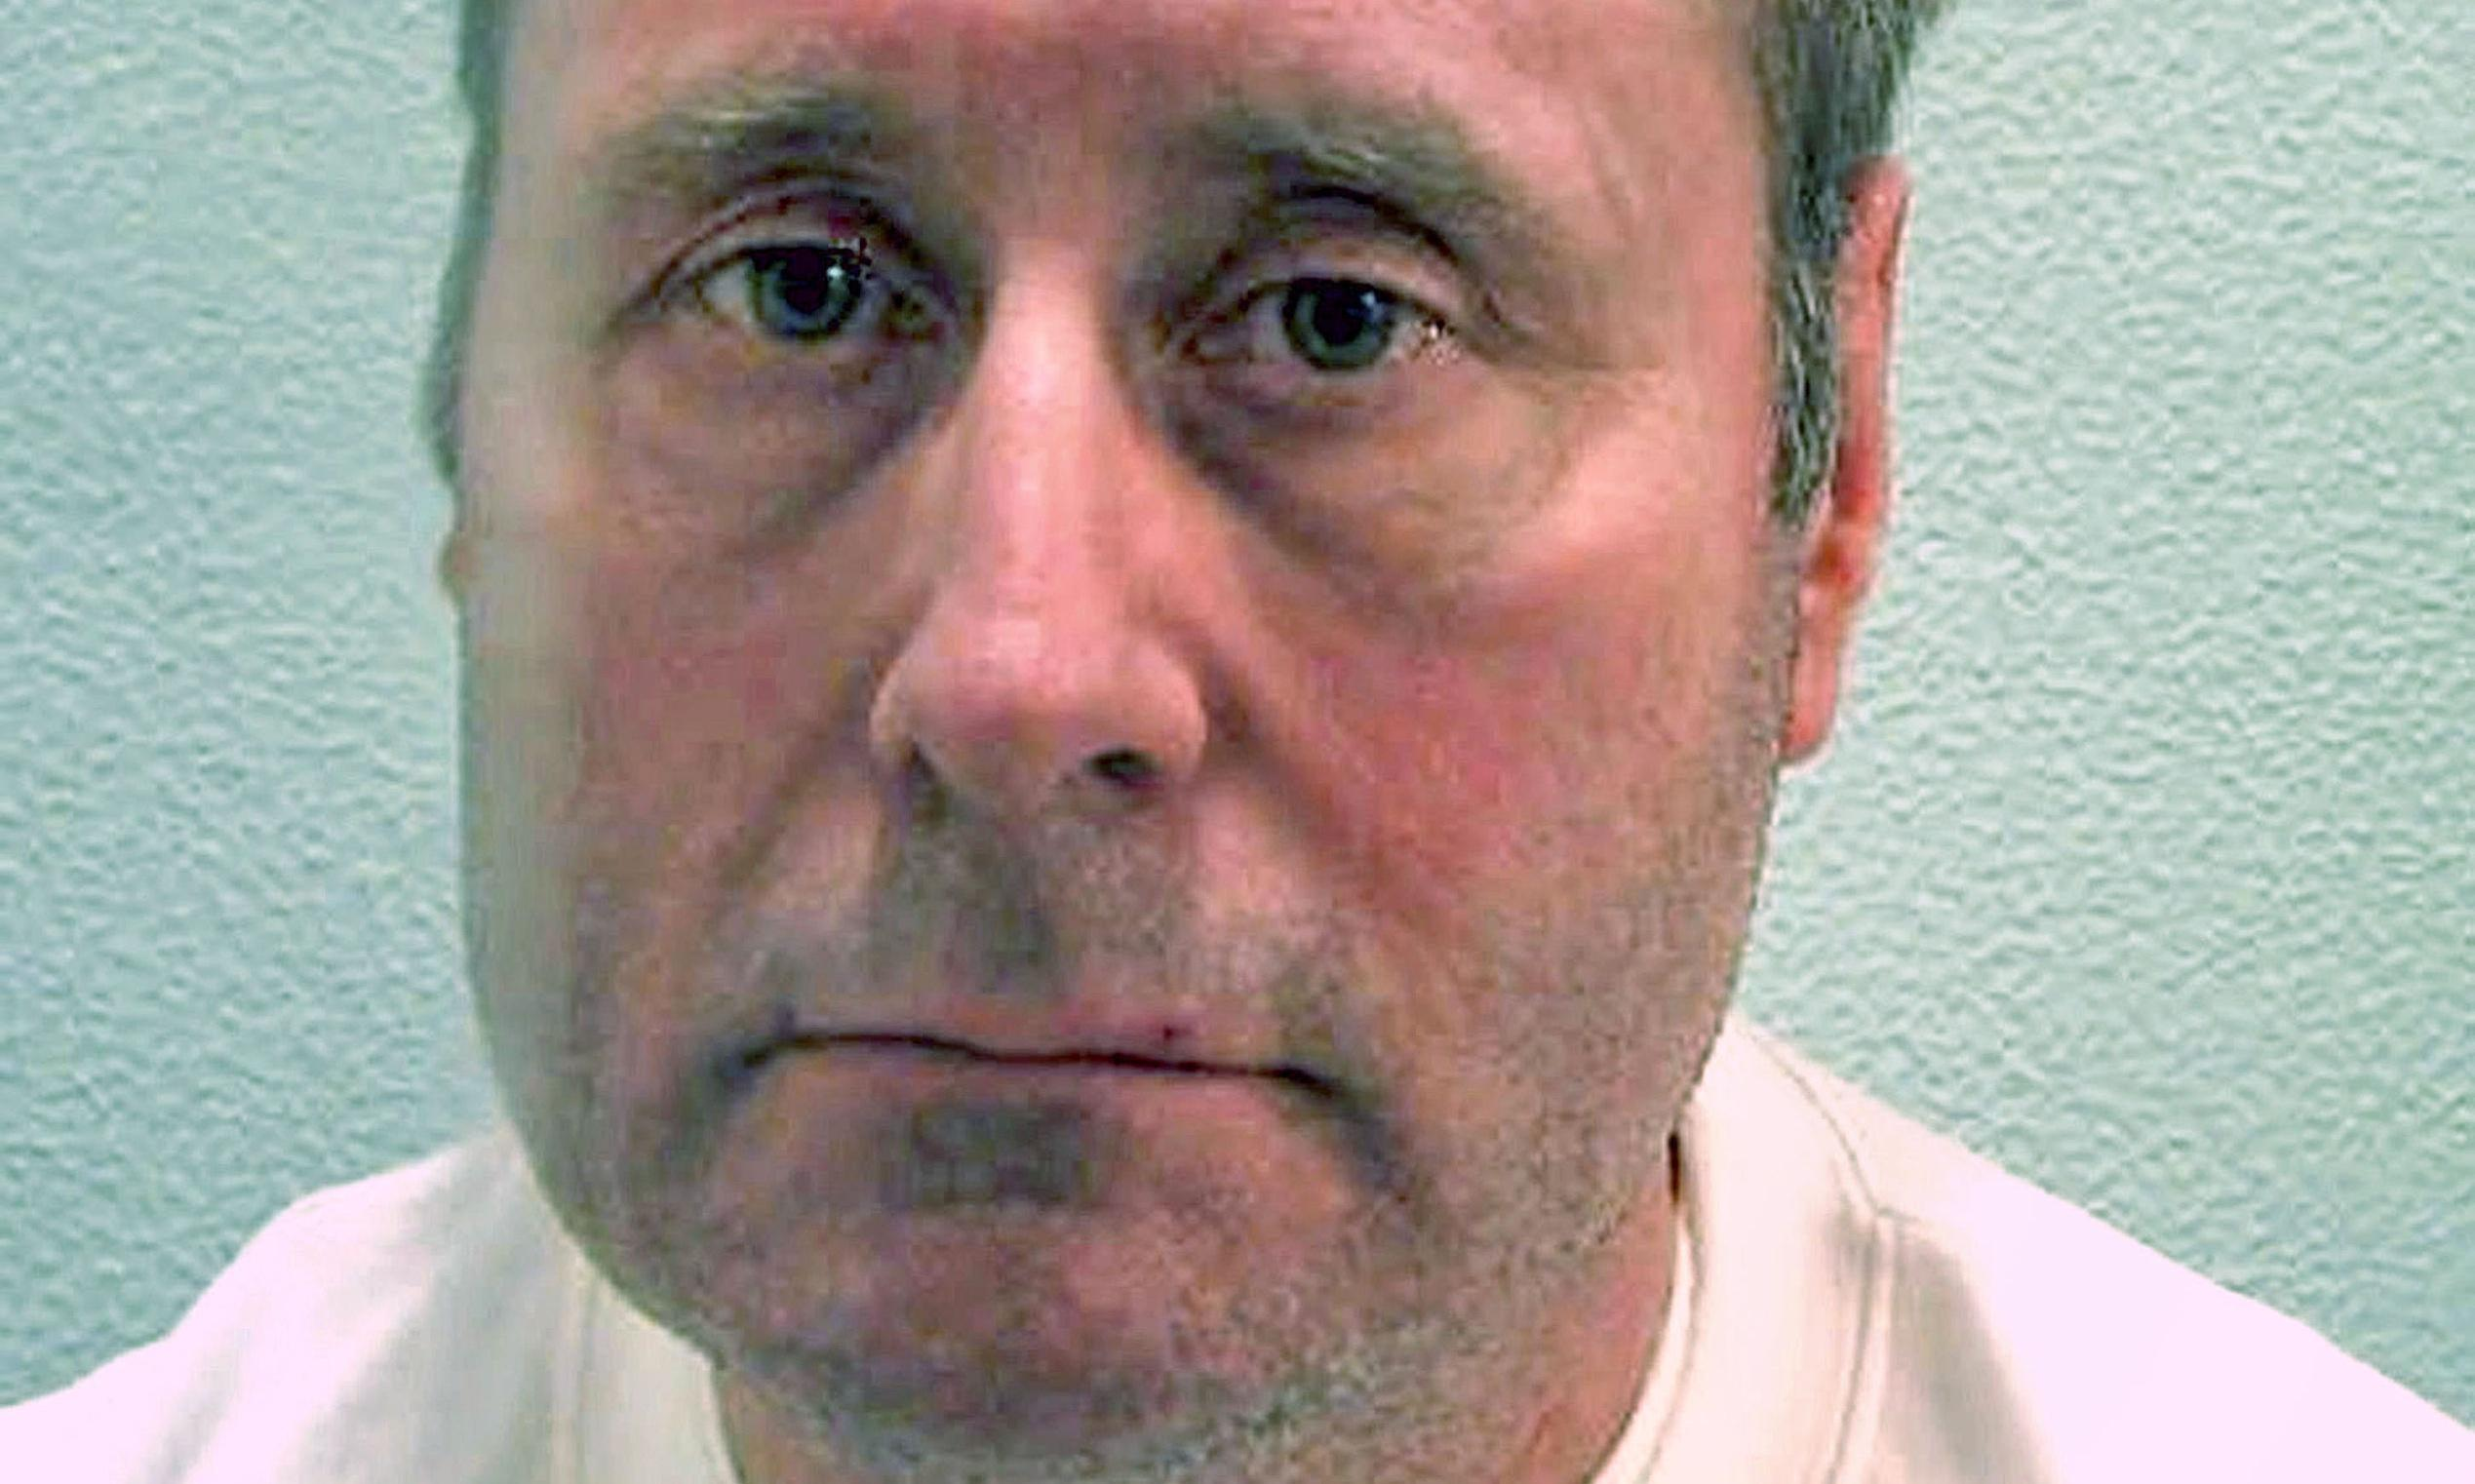 John Worboys appears in court charged with four sexual offences